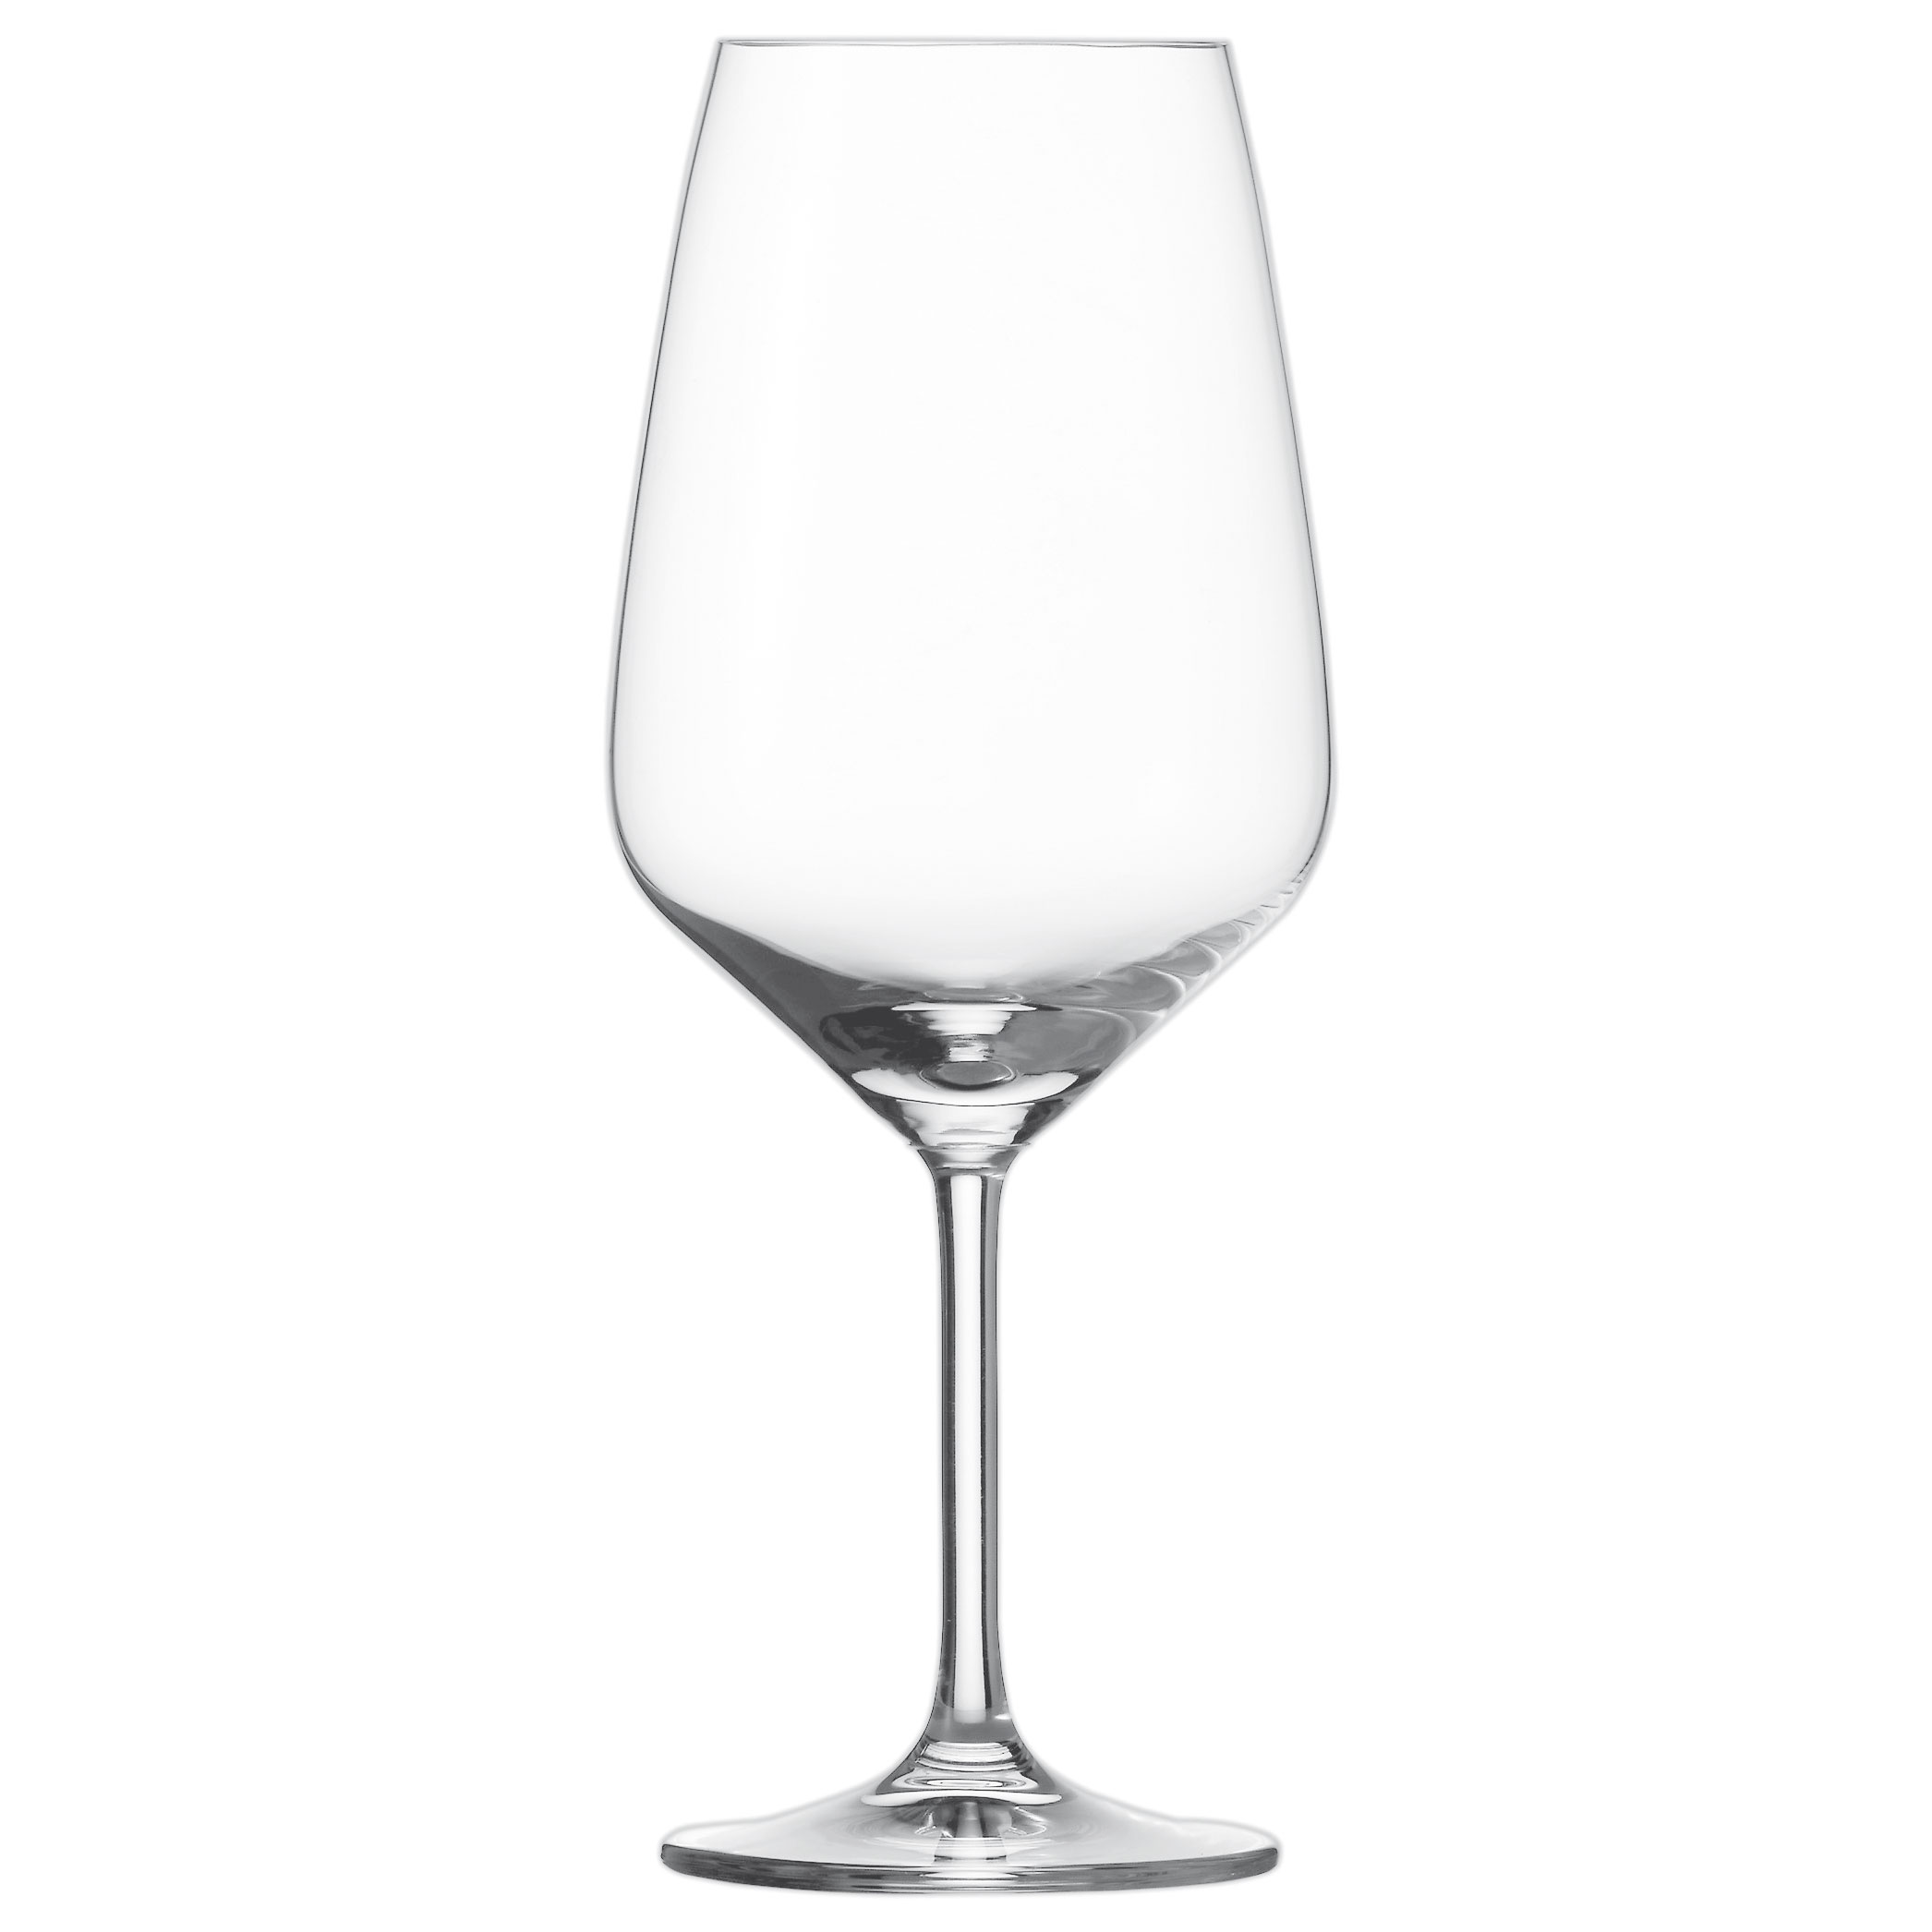 Weinkelch Glas Schott Zwiesel Taste Bordeaux Glass 130 Set Of 6 Red Wine Goblet 656 Ml 115672 At About Tea De Shop